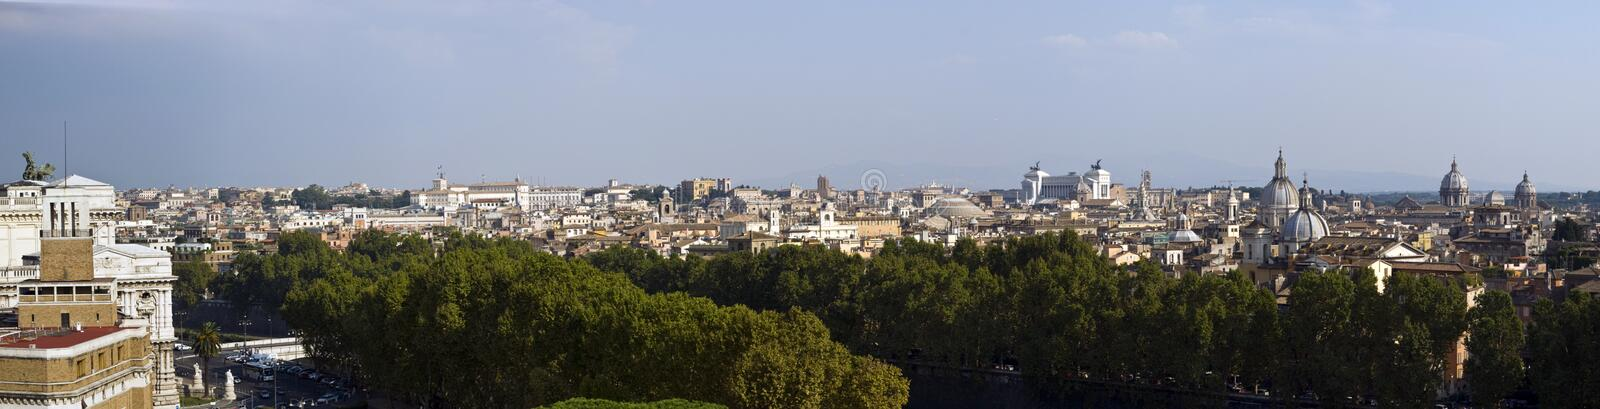 Overview of Rome royalty free stock photo